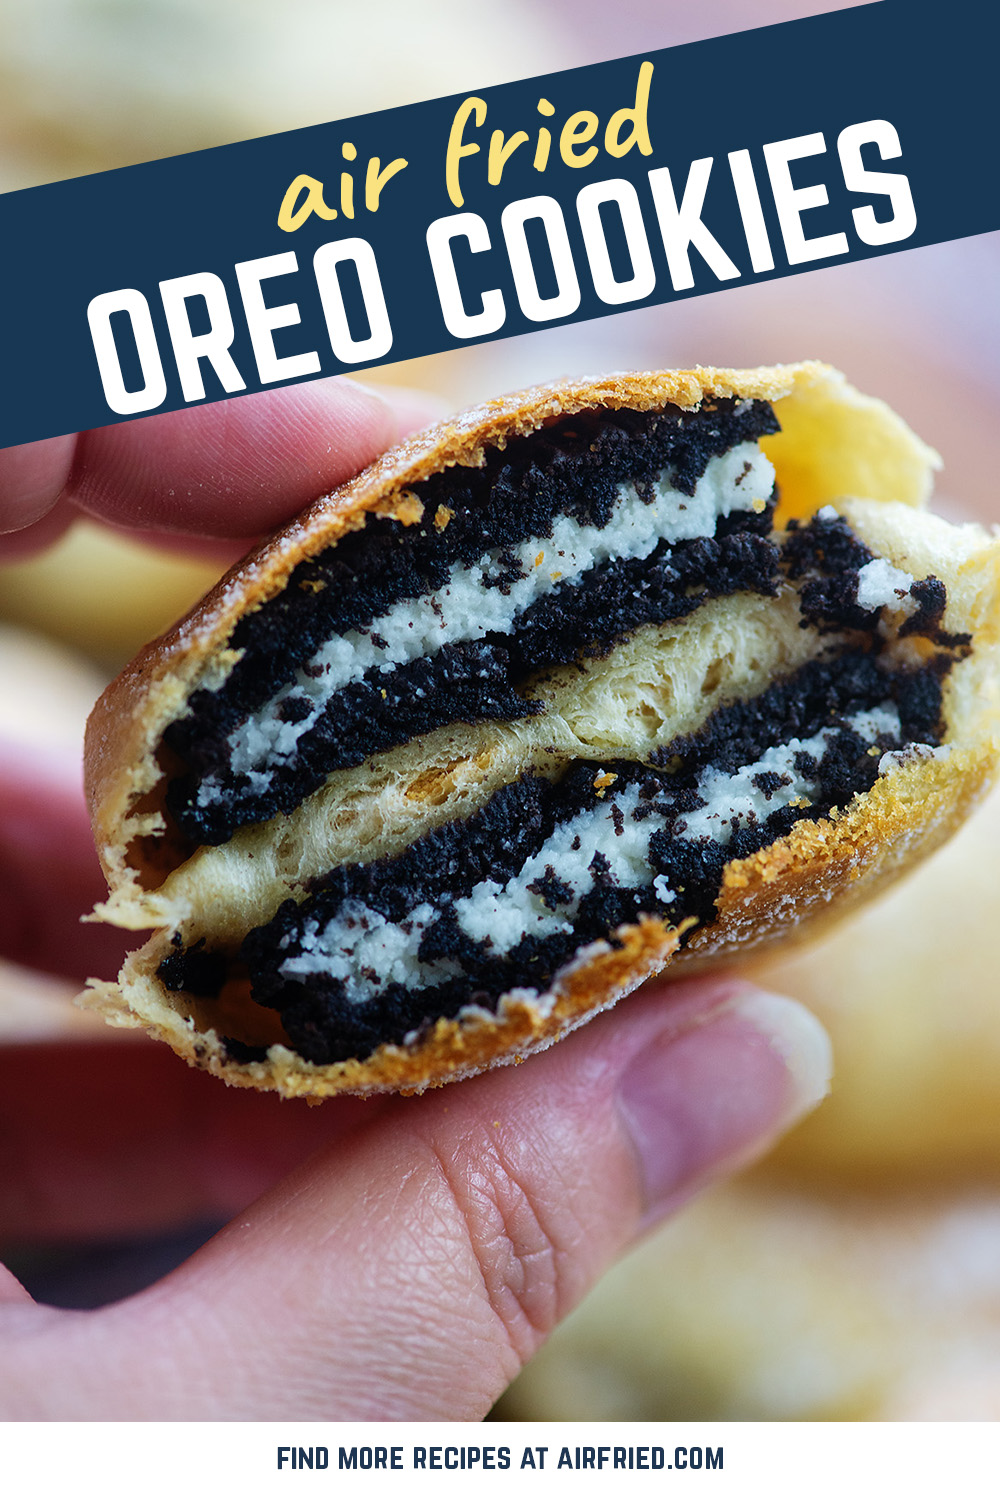 I love this sweet fried oreo with the soft center! #airfryer #recipe #cookies